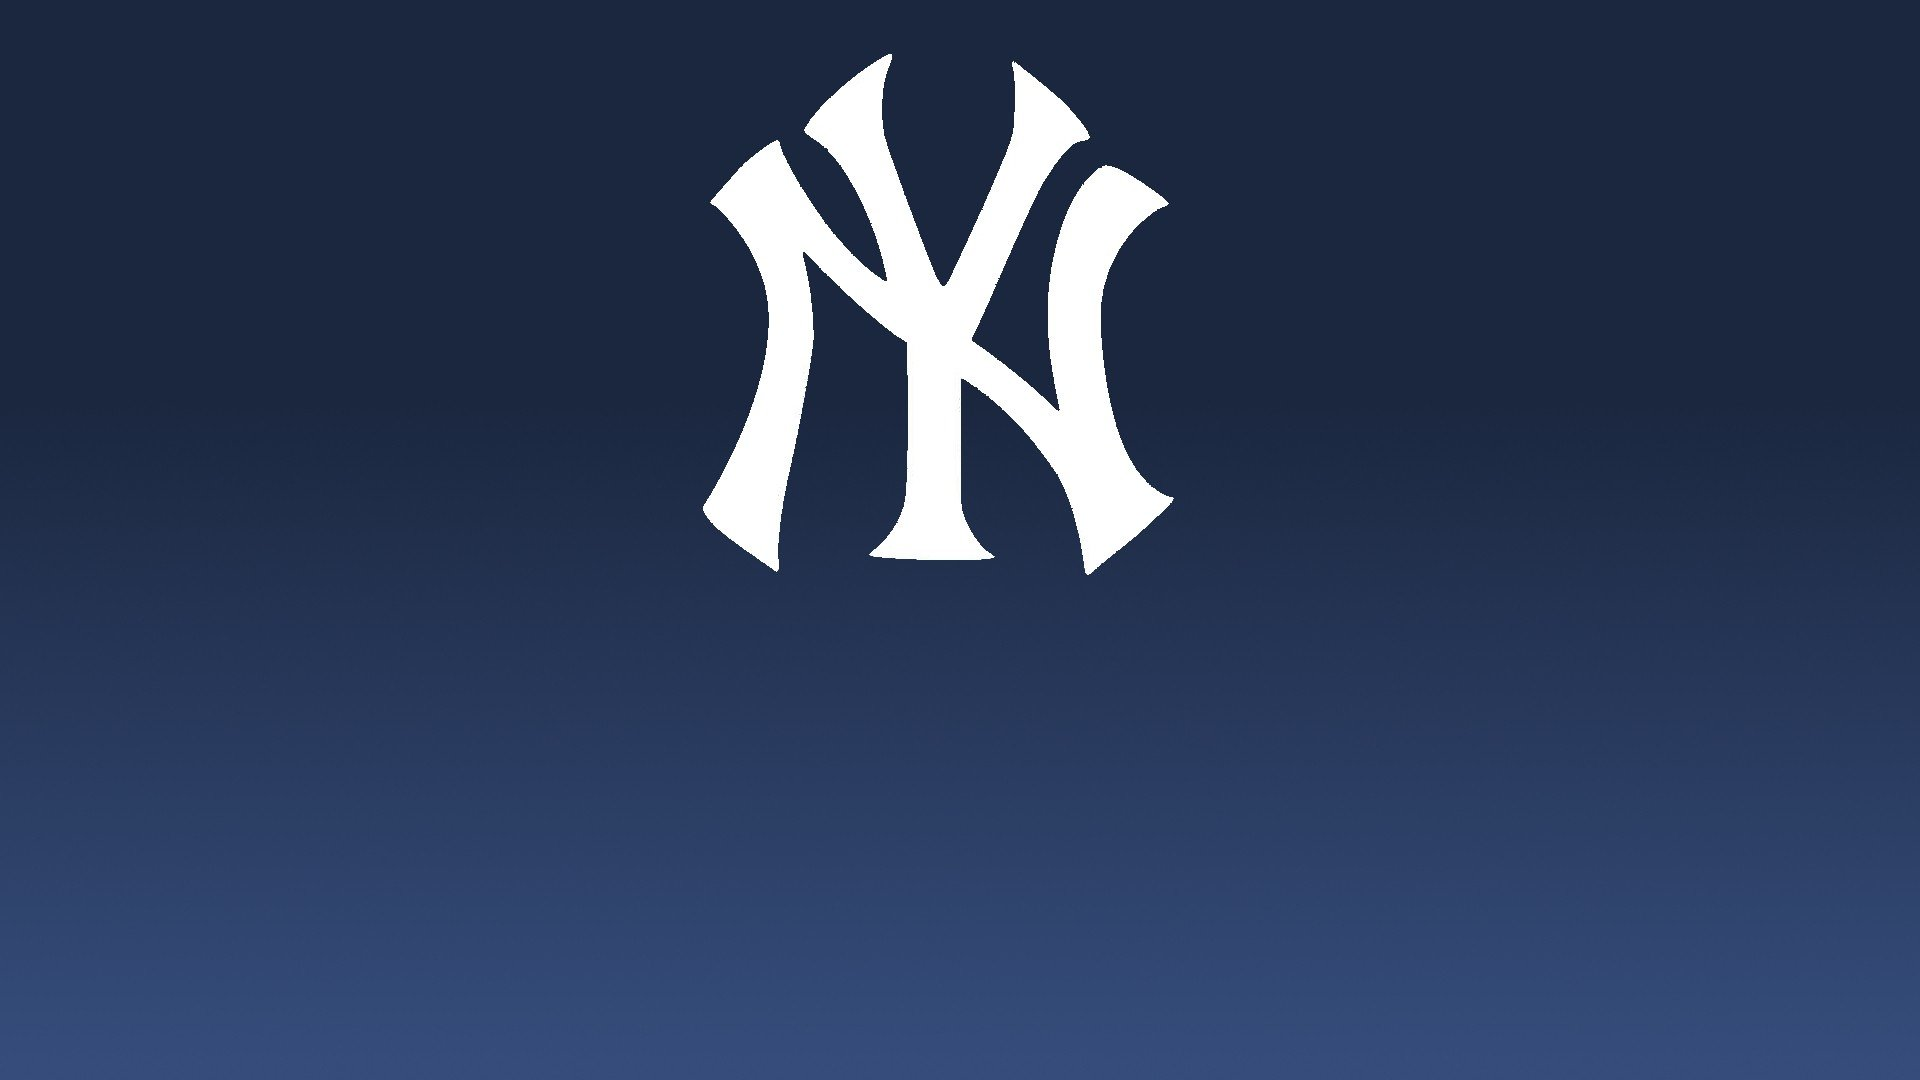 Download full hd New York Yankees PC background ID:21892 for free